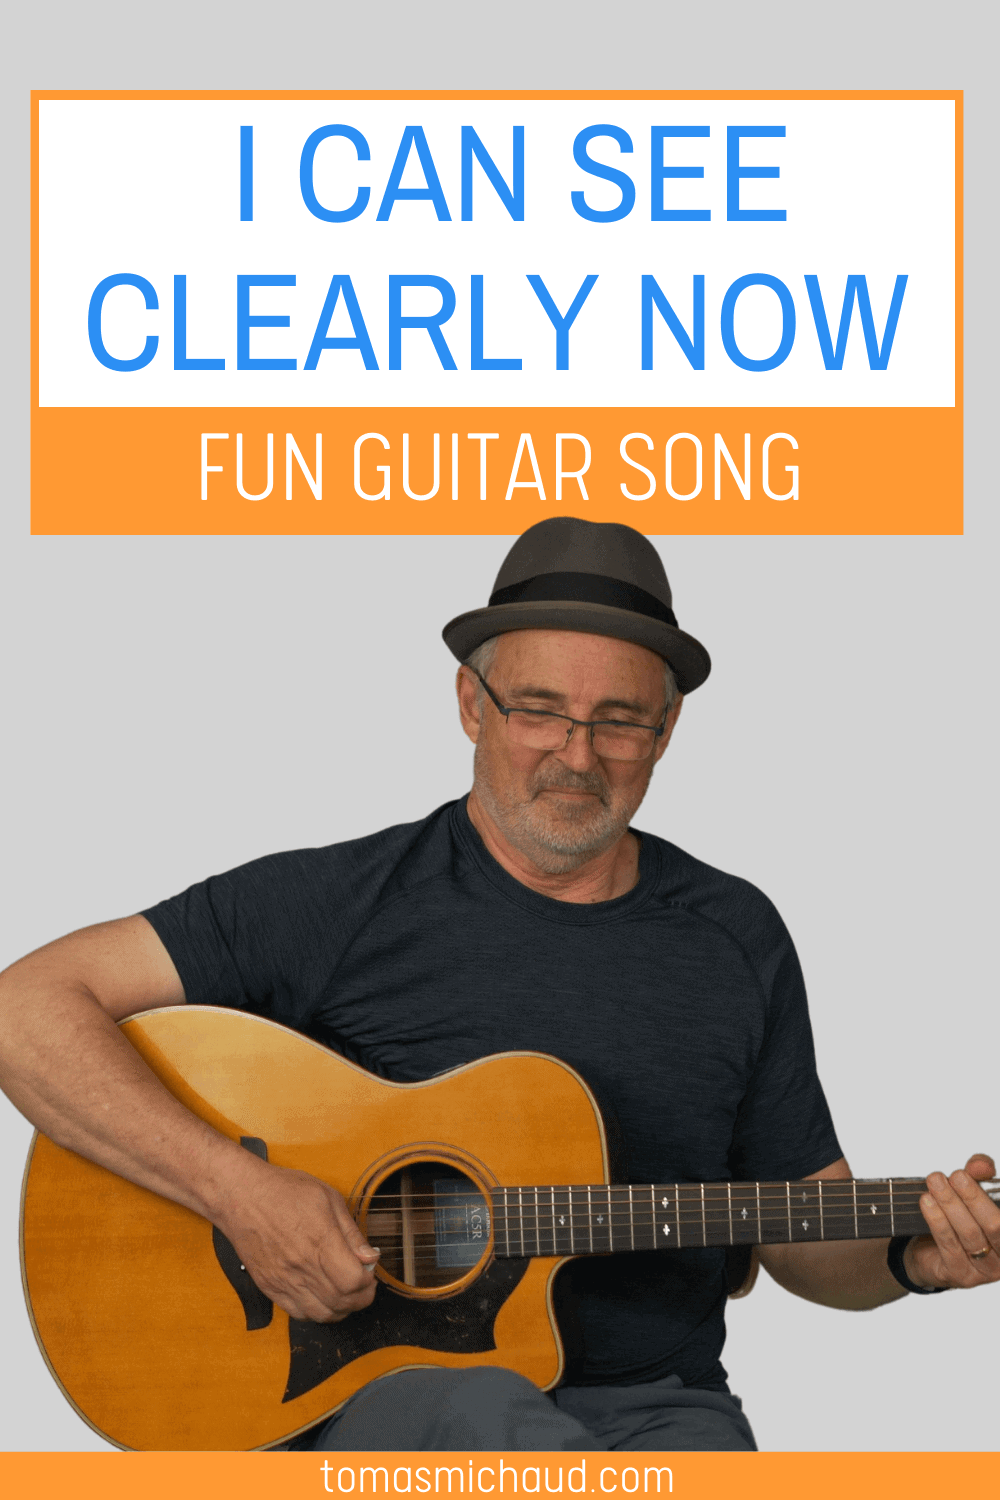 I Can See Clearly Now Fun Guitar Song